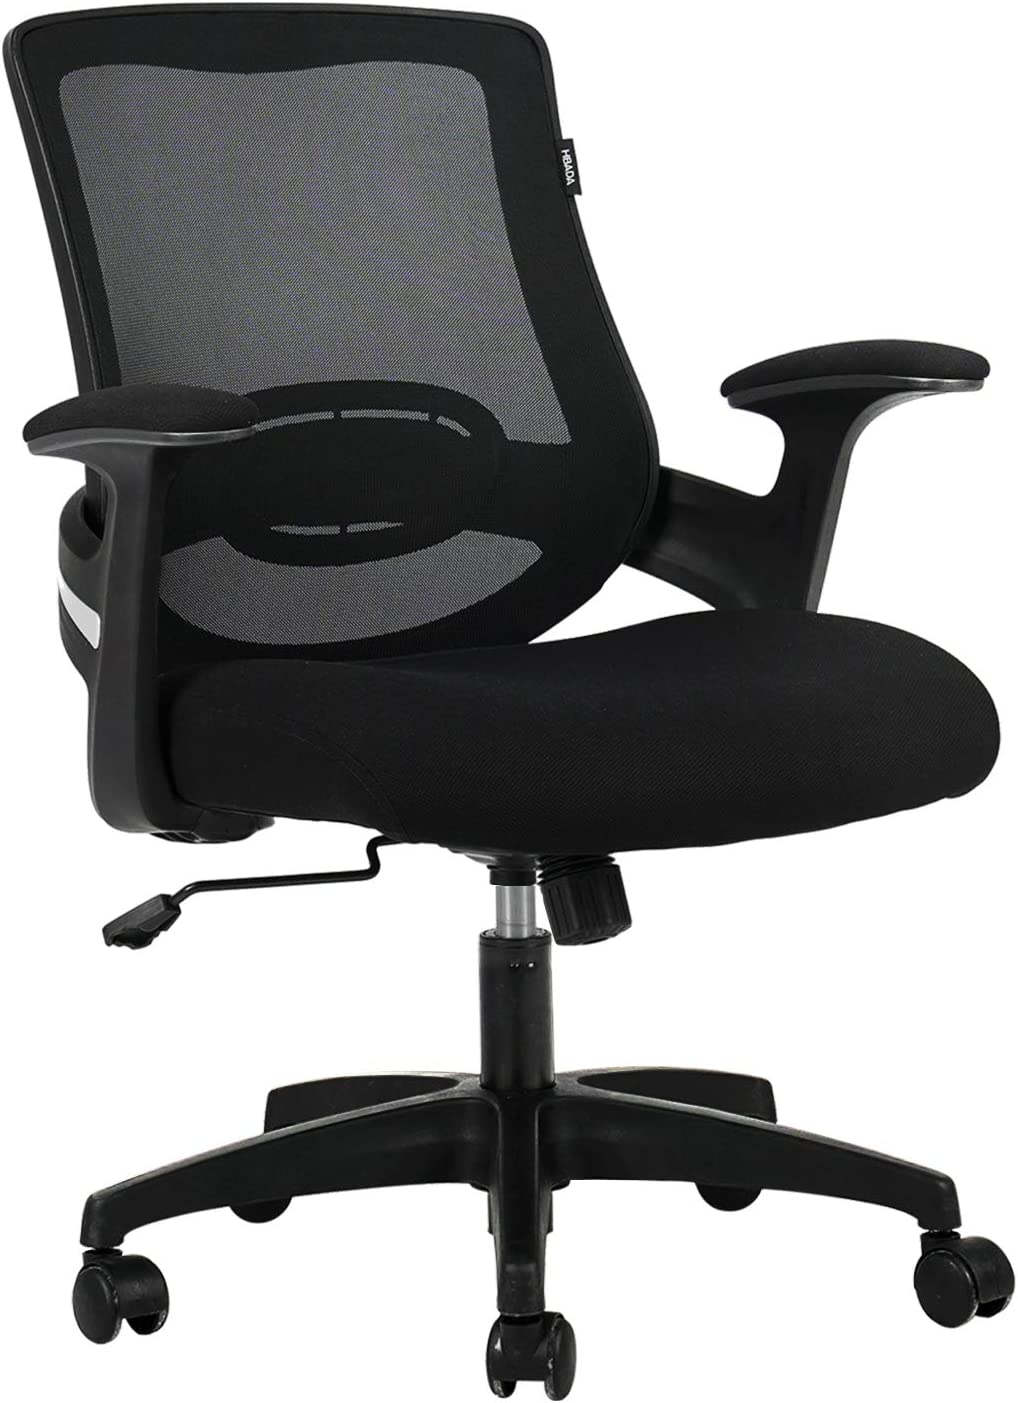 Hbada Ergonomic Office Chair Computer Desk Chair Mid-Back Mesh Task Chair with Strong Shield Type Lumbar Support, Height Adjustable Swivel and Rocking Chair with Padded Armrest, Black.